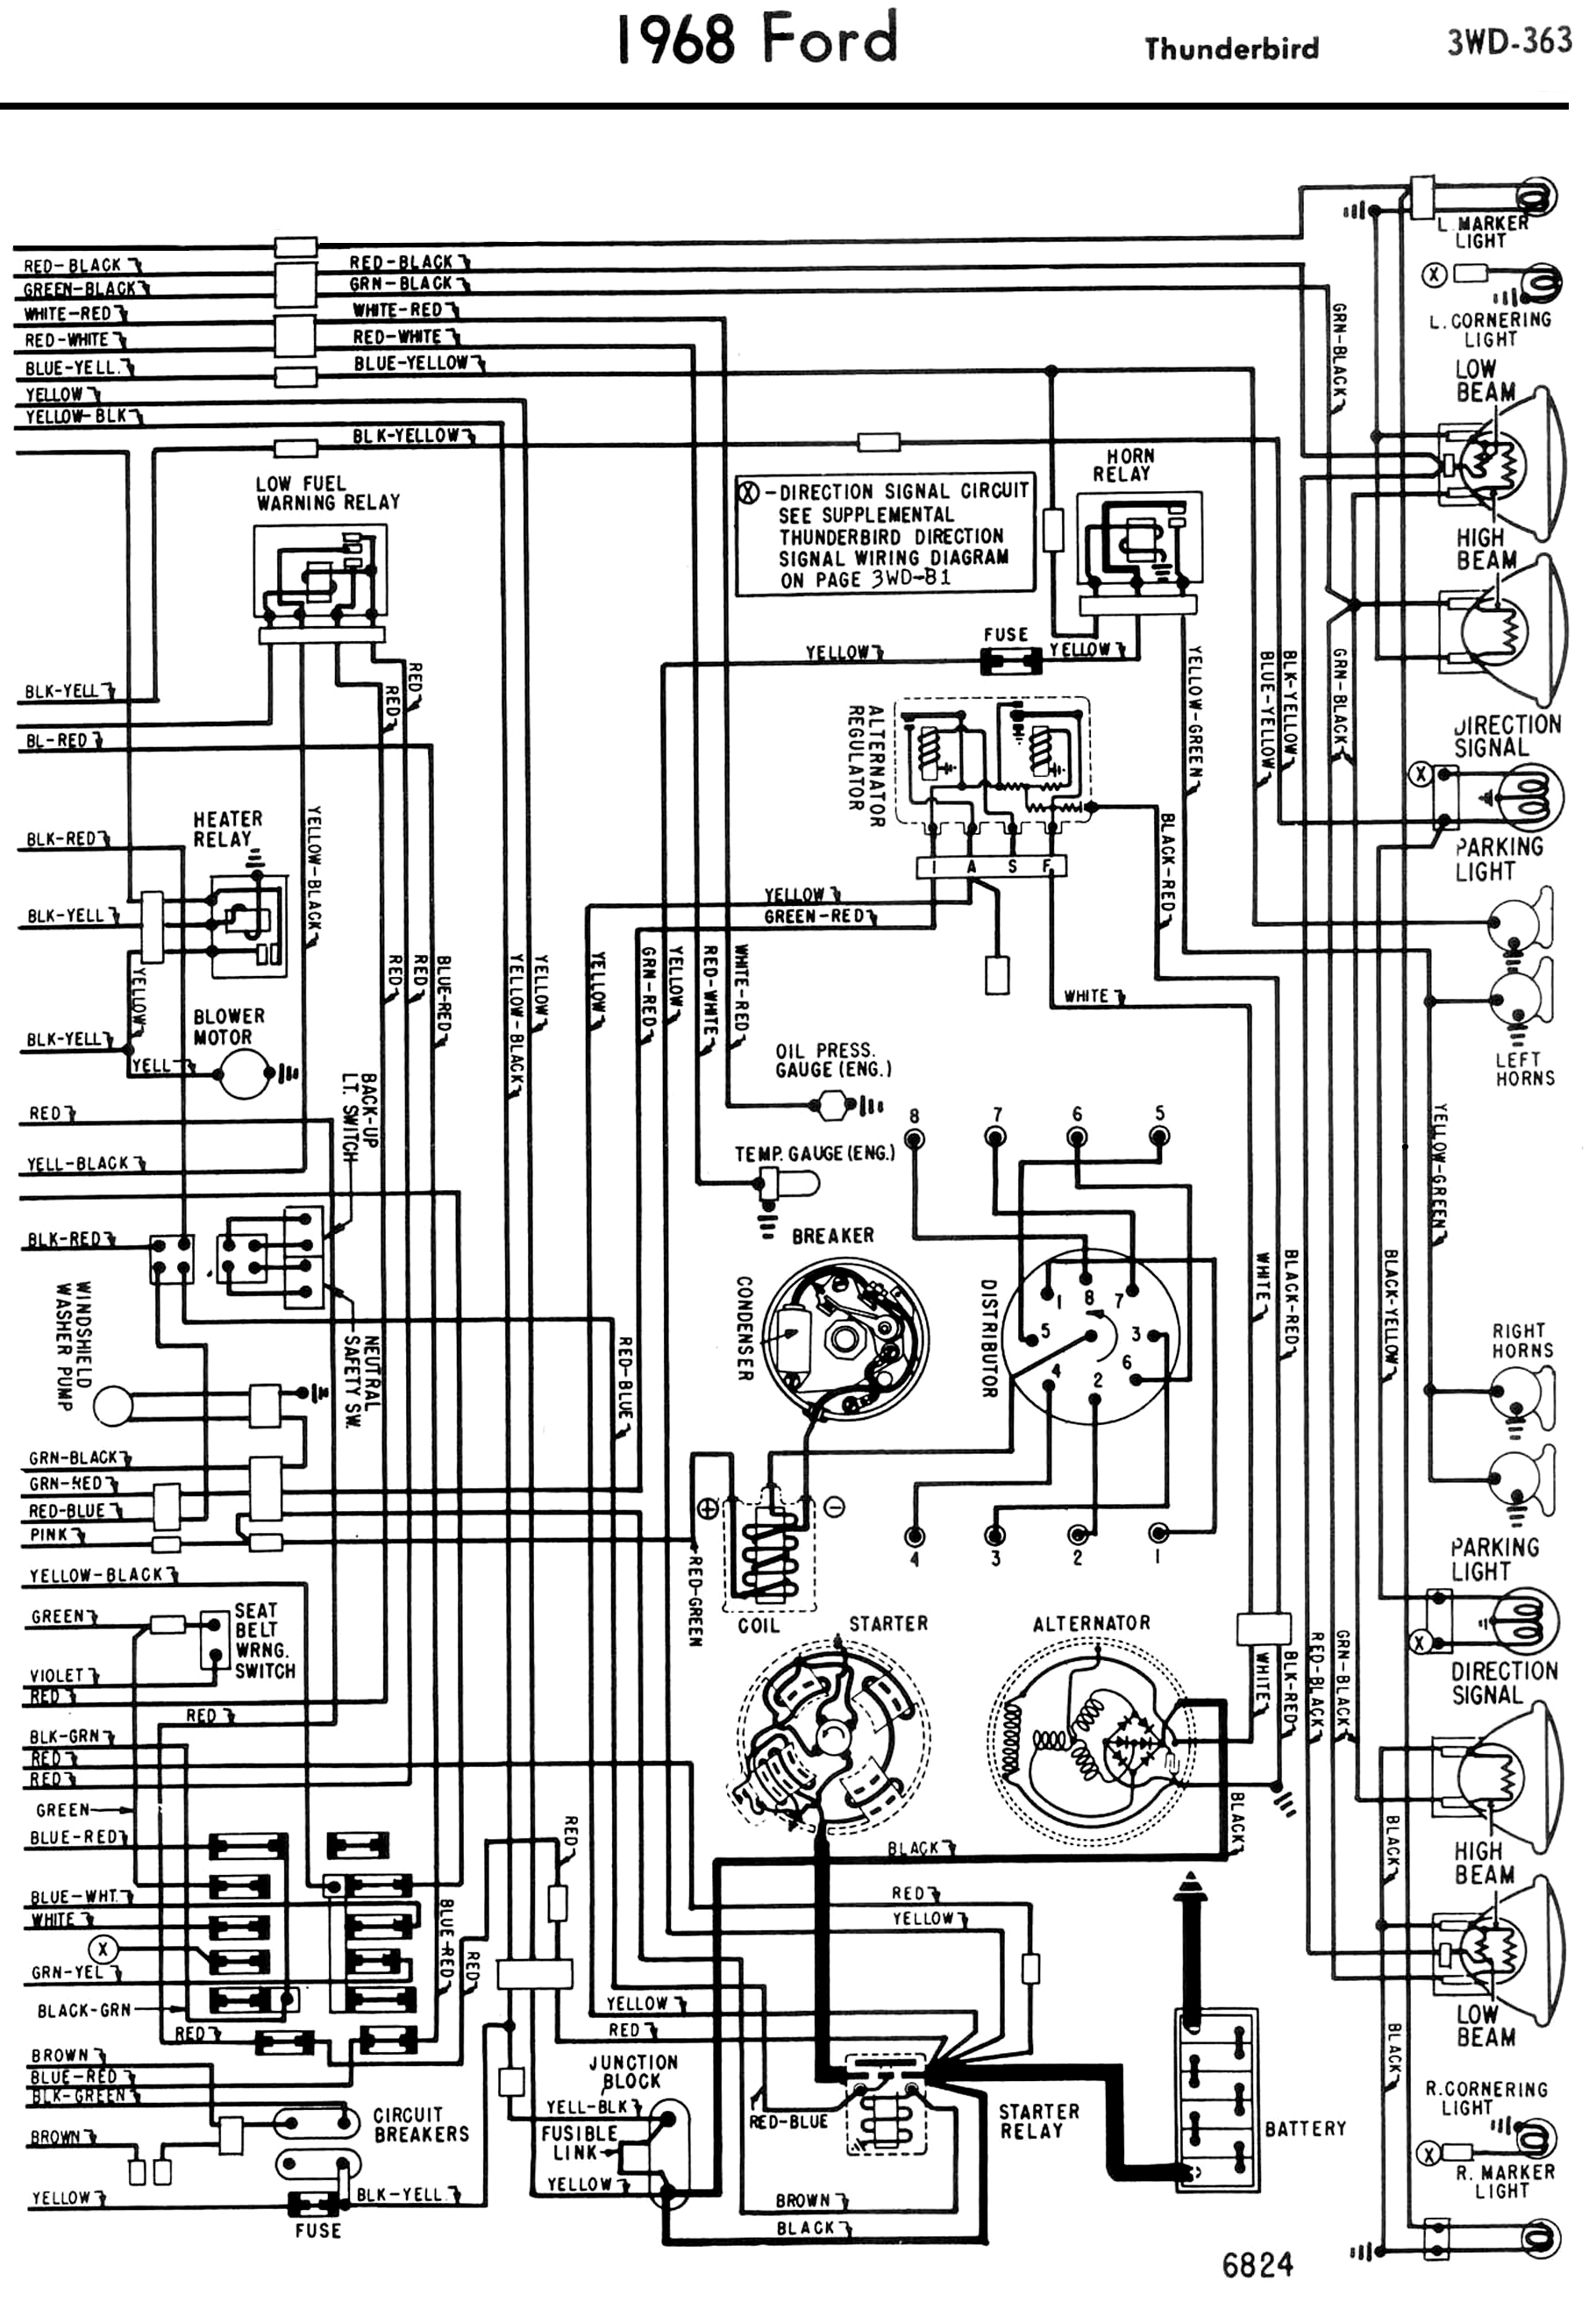 1968 Thunderbird Ignition Wiring Diagram Custom Ford Mustang 66 Enthusiast Diagrams U2022 Rh Rasalibre Co Gm 2004